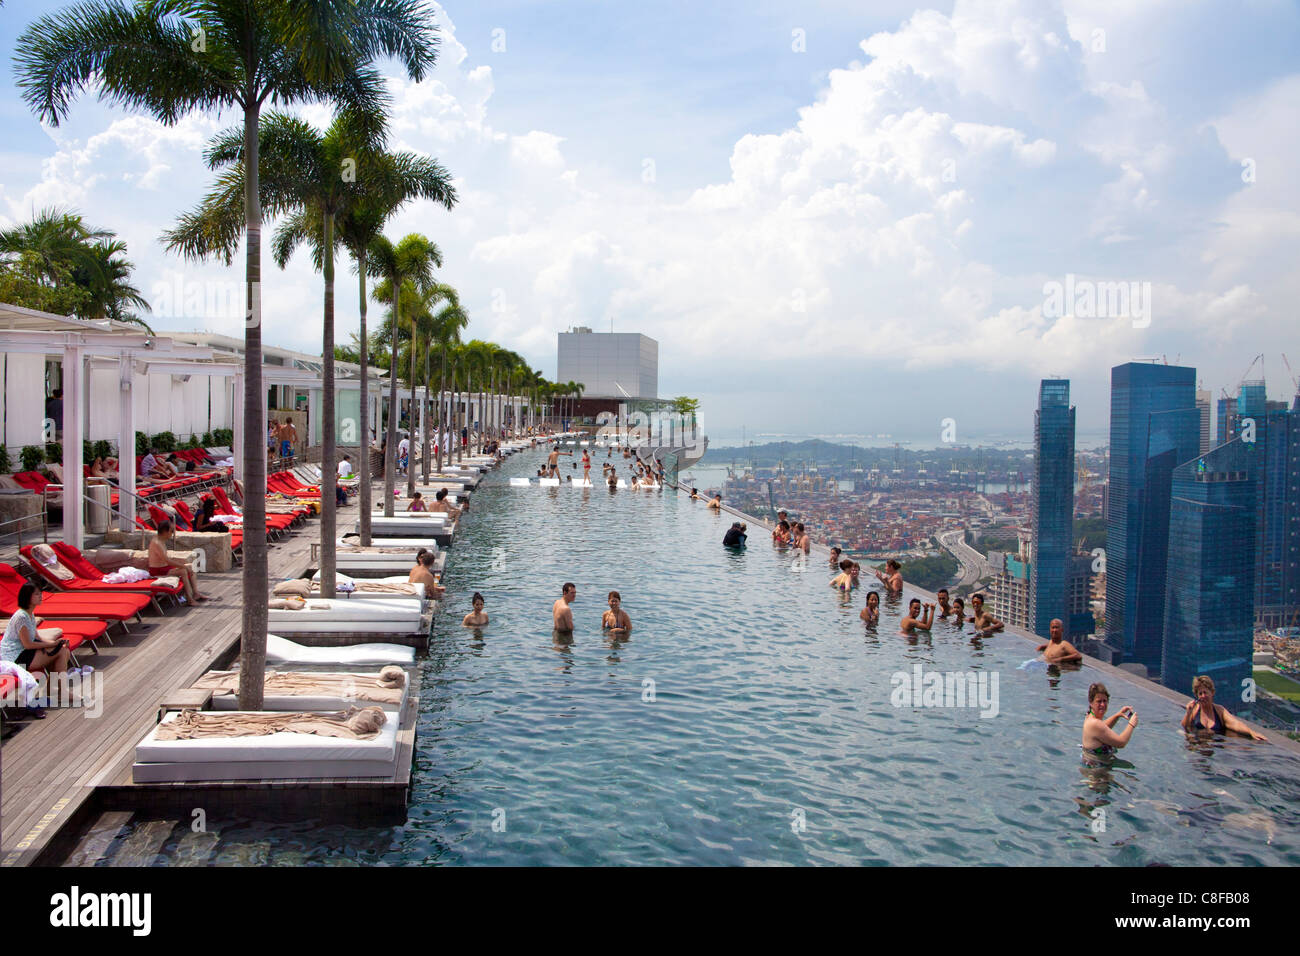 Singapore asia marina bay hotel hotel pool look glance at stock photo 39675896 alamy - Singapore hotel piscina ...